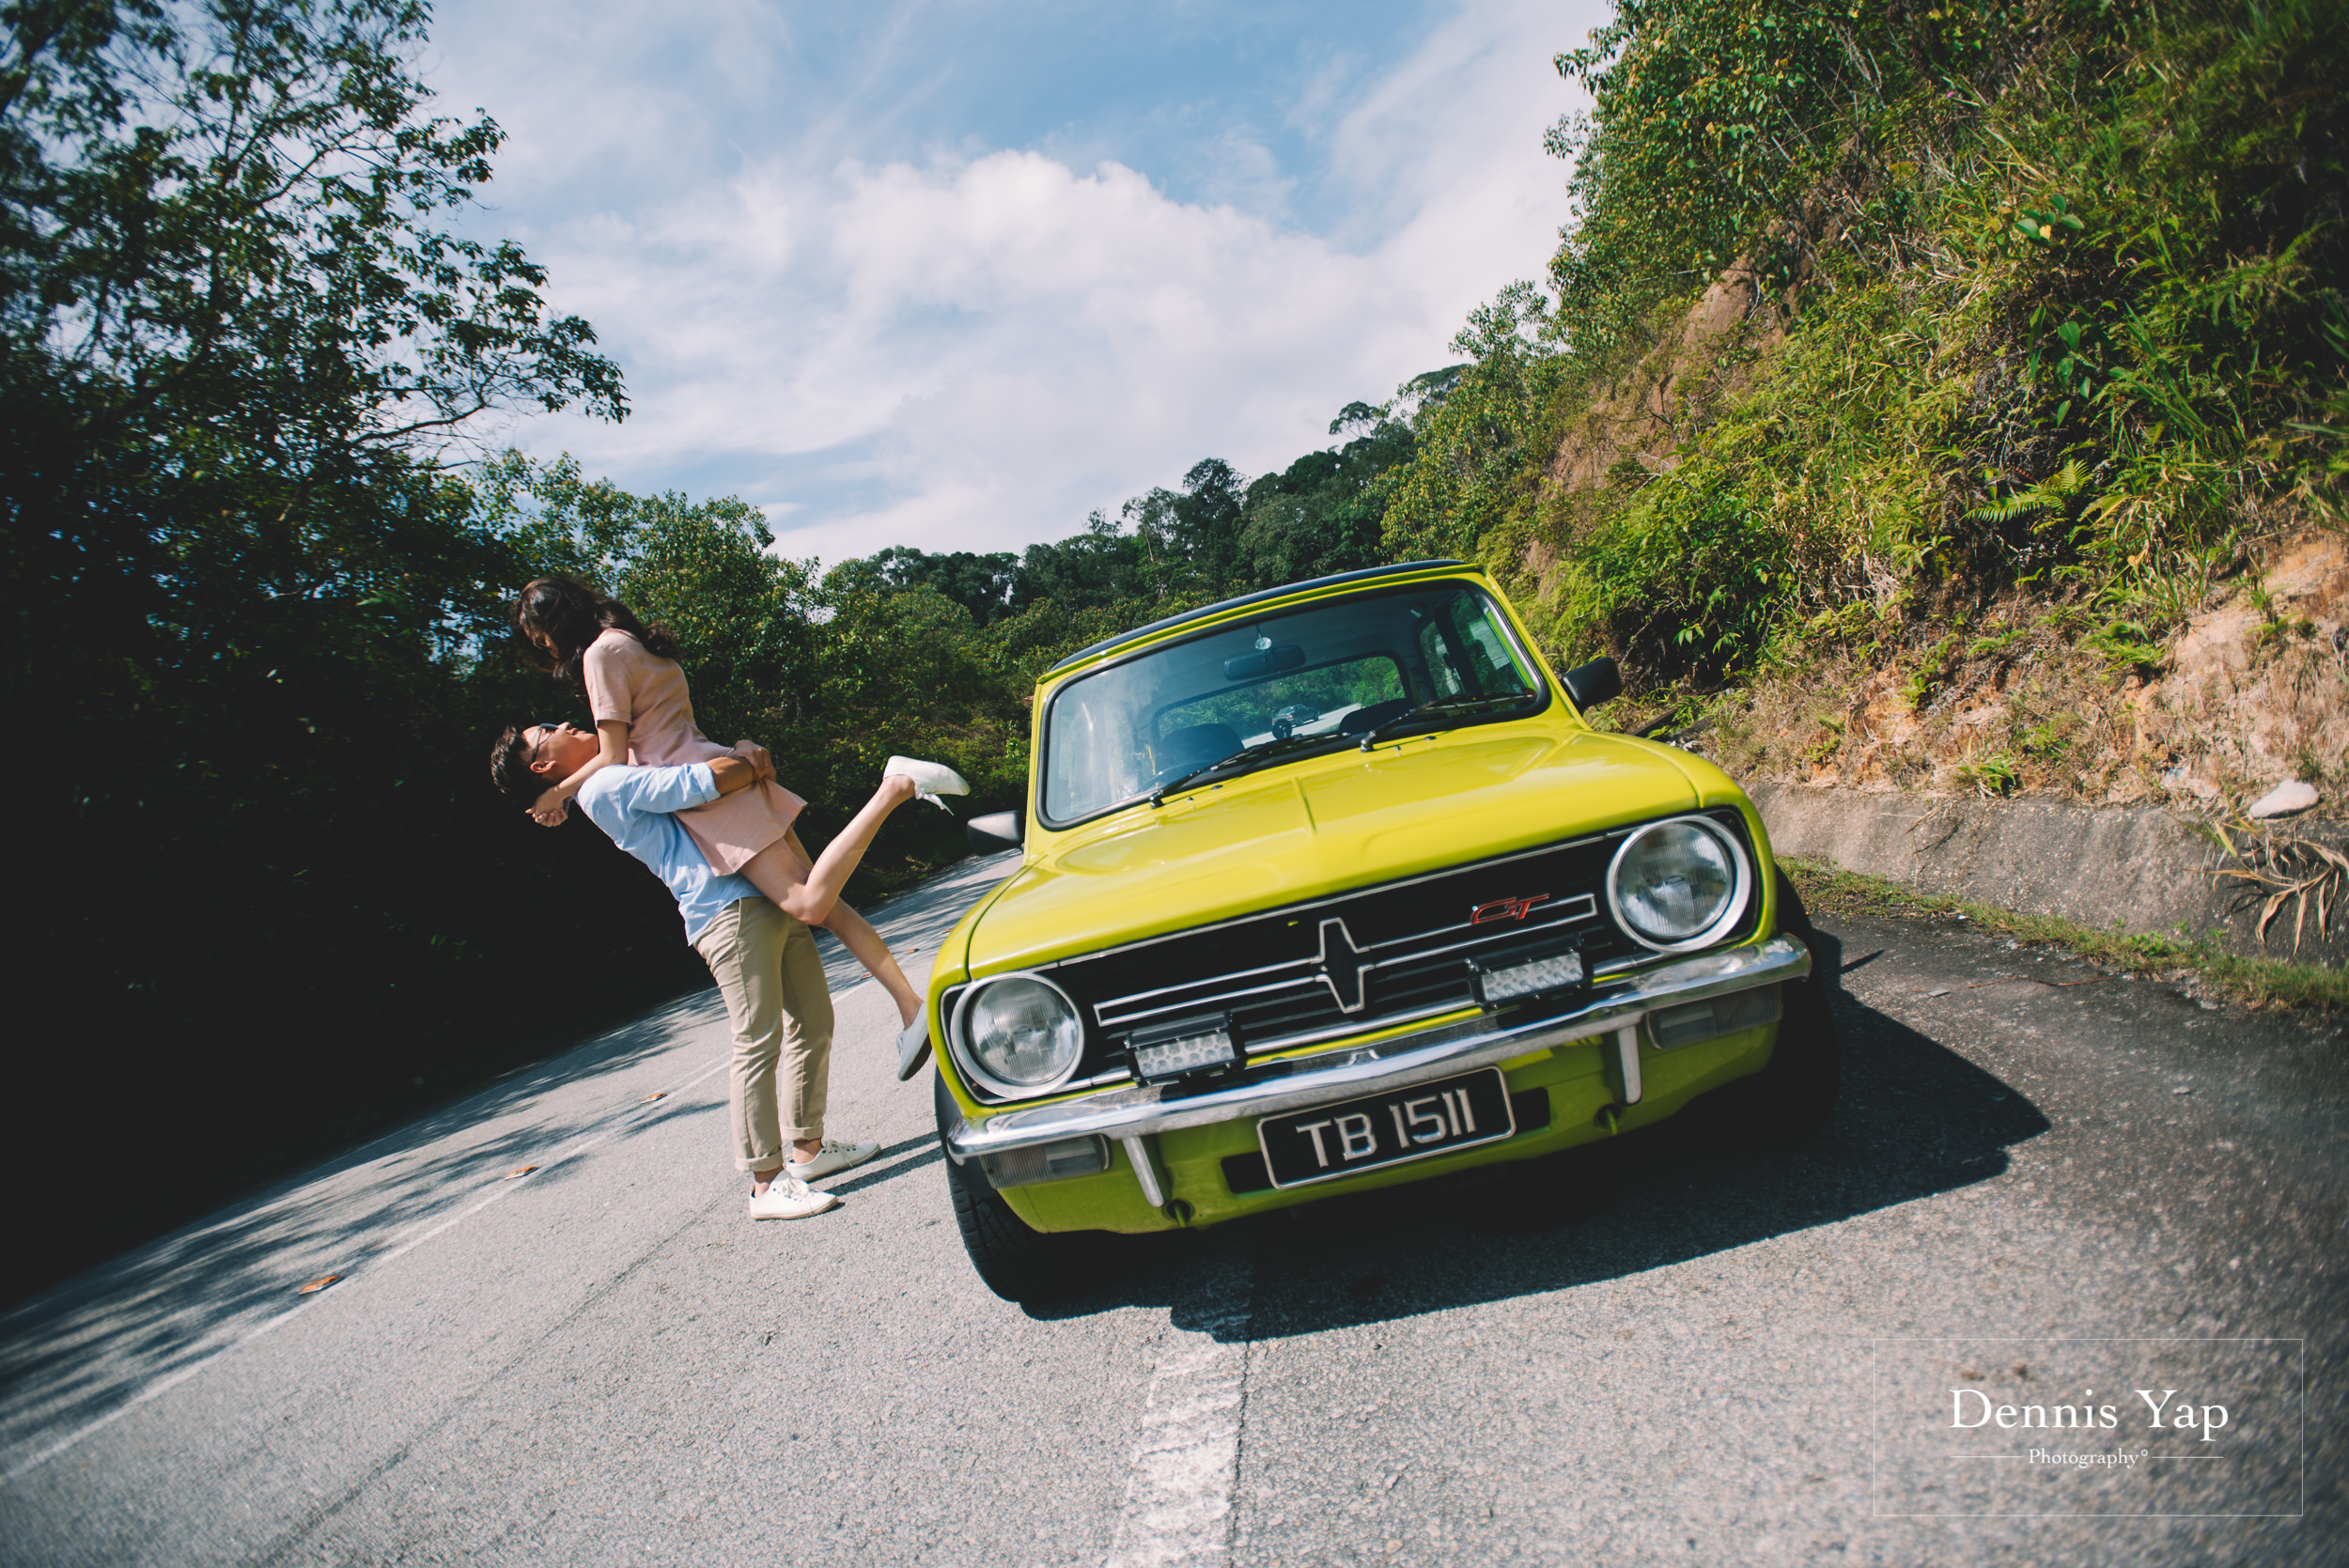 steven ching pre wedding hulu langat namwah road background beloved lookout point dennis yap photography malaysia top photographer-13.jpg